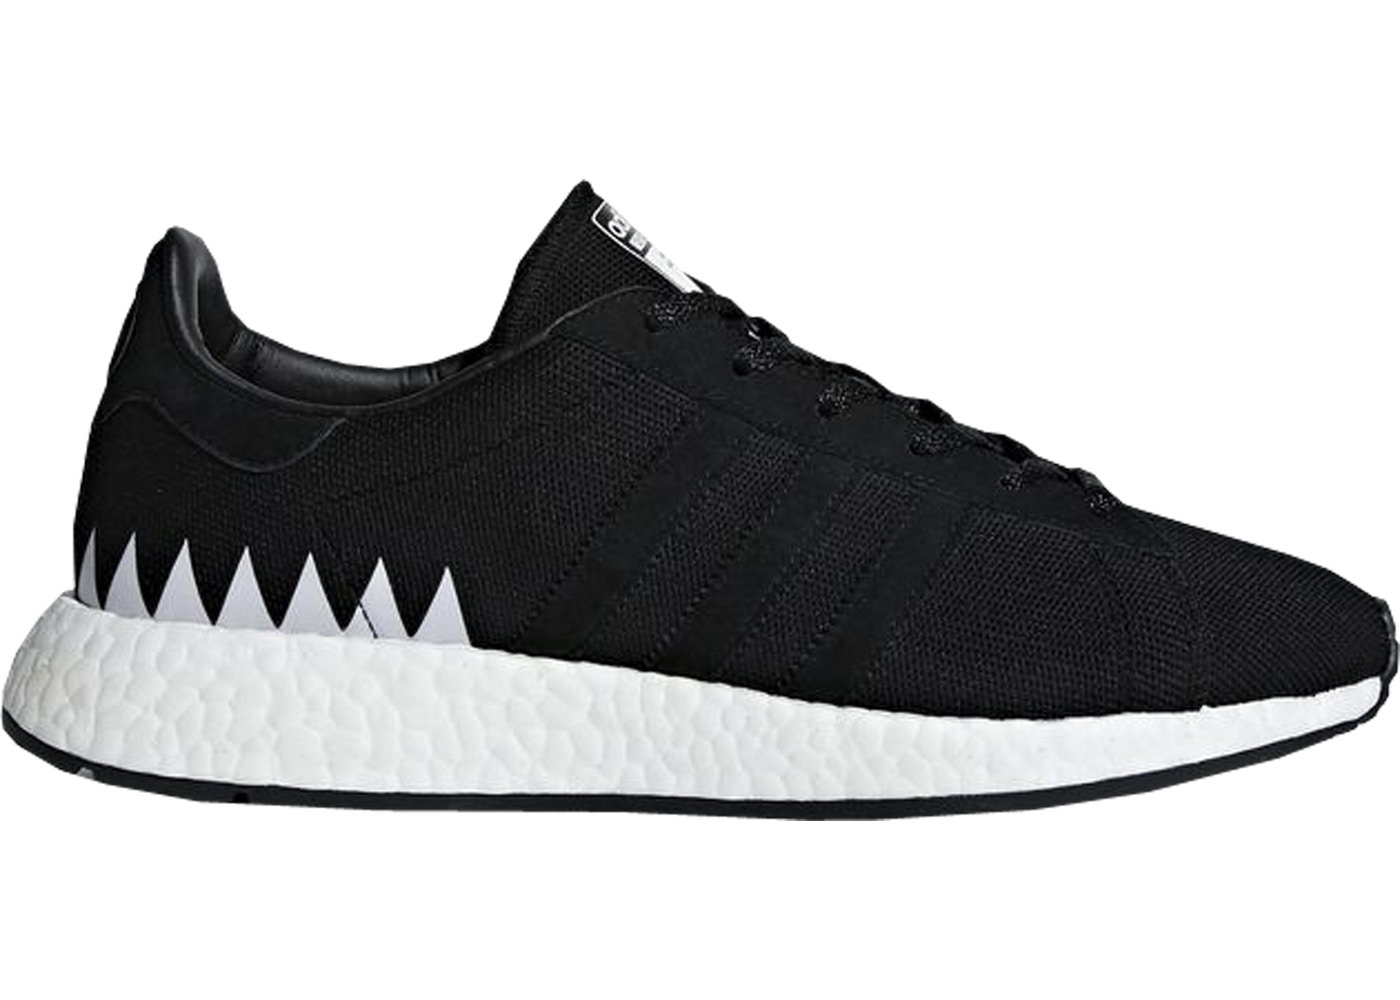 new product 695b4 f8e6c adidas Chop Shop Neighborhood Core Black